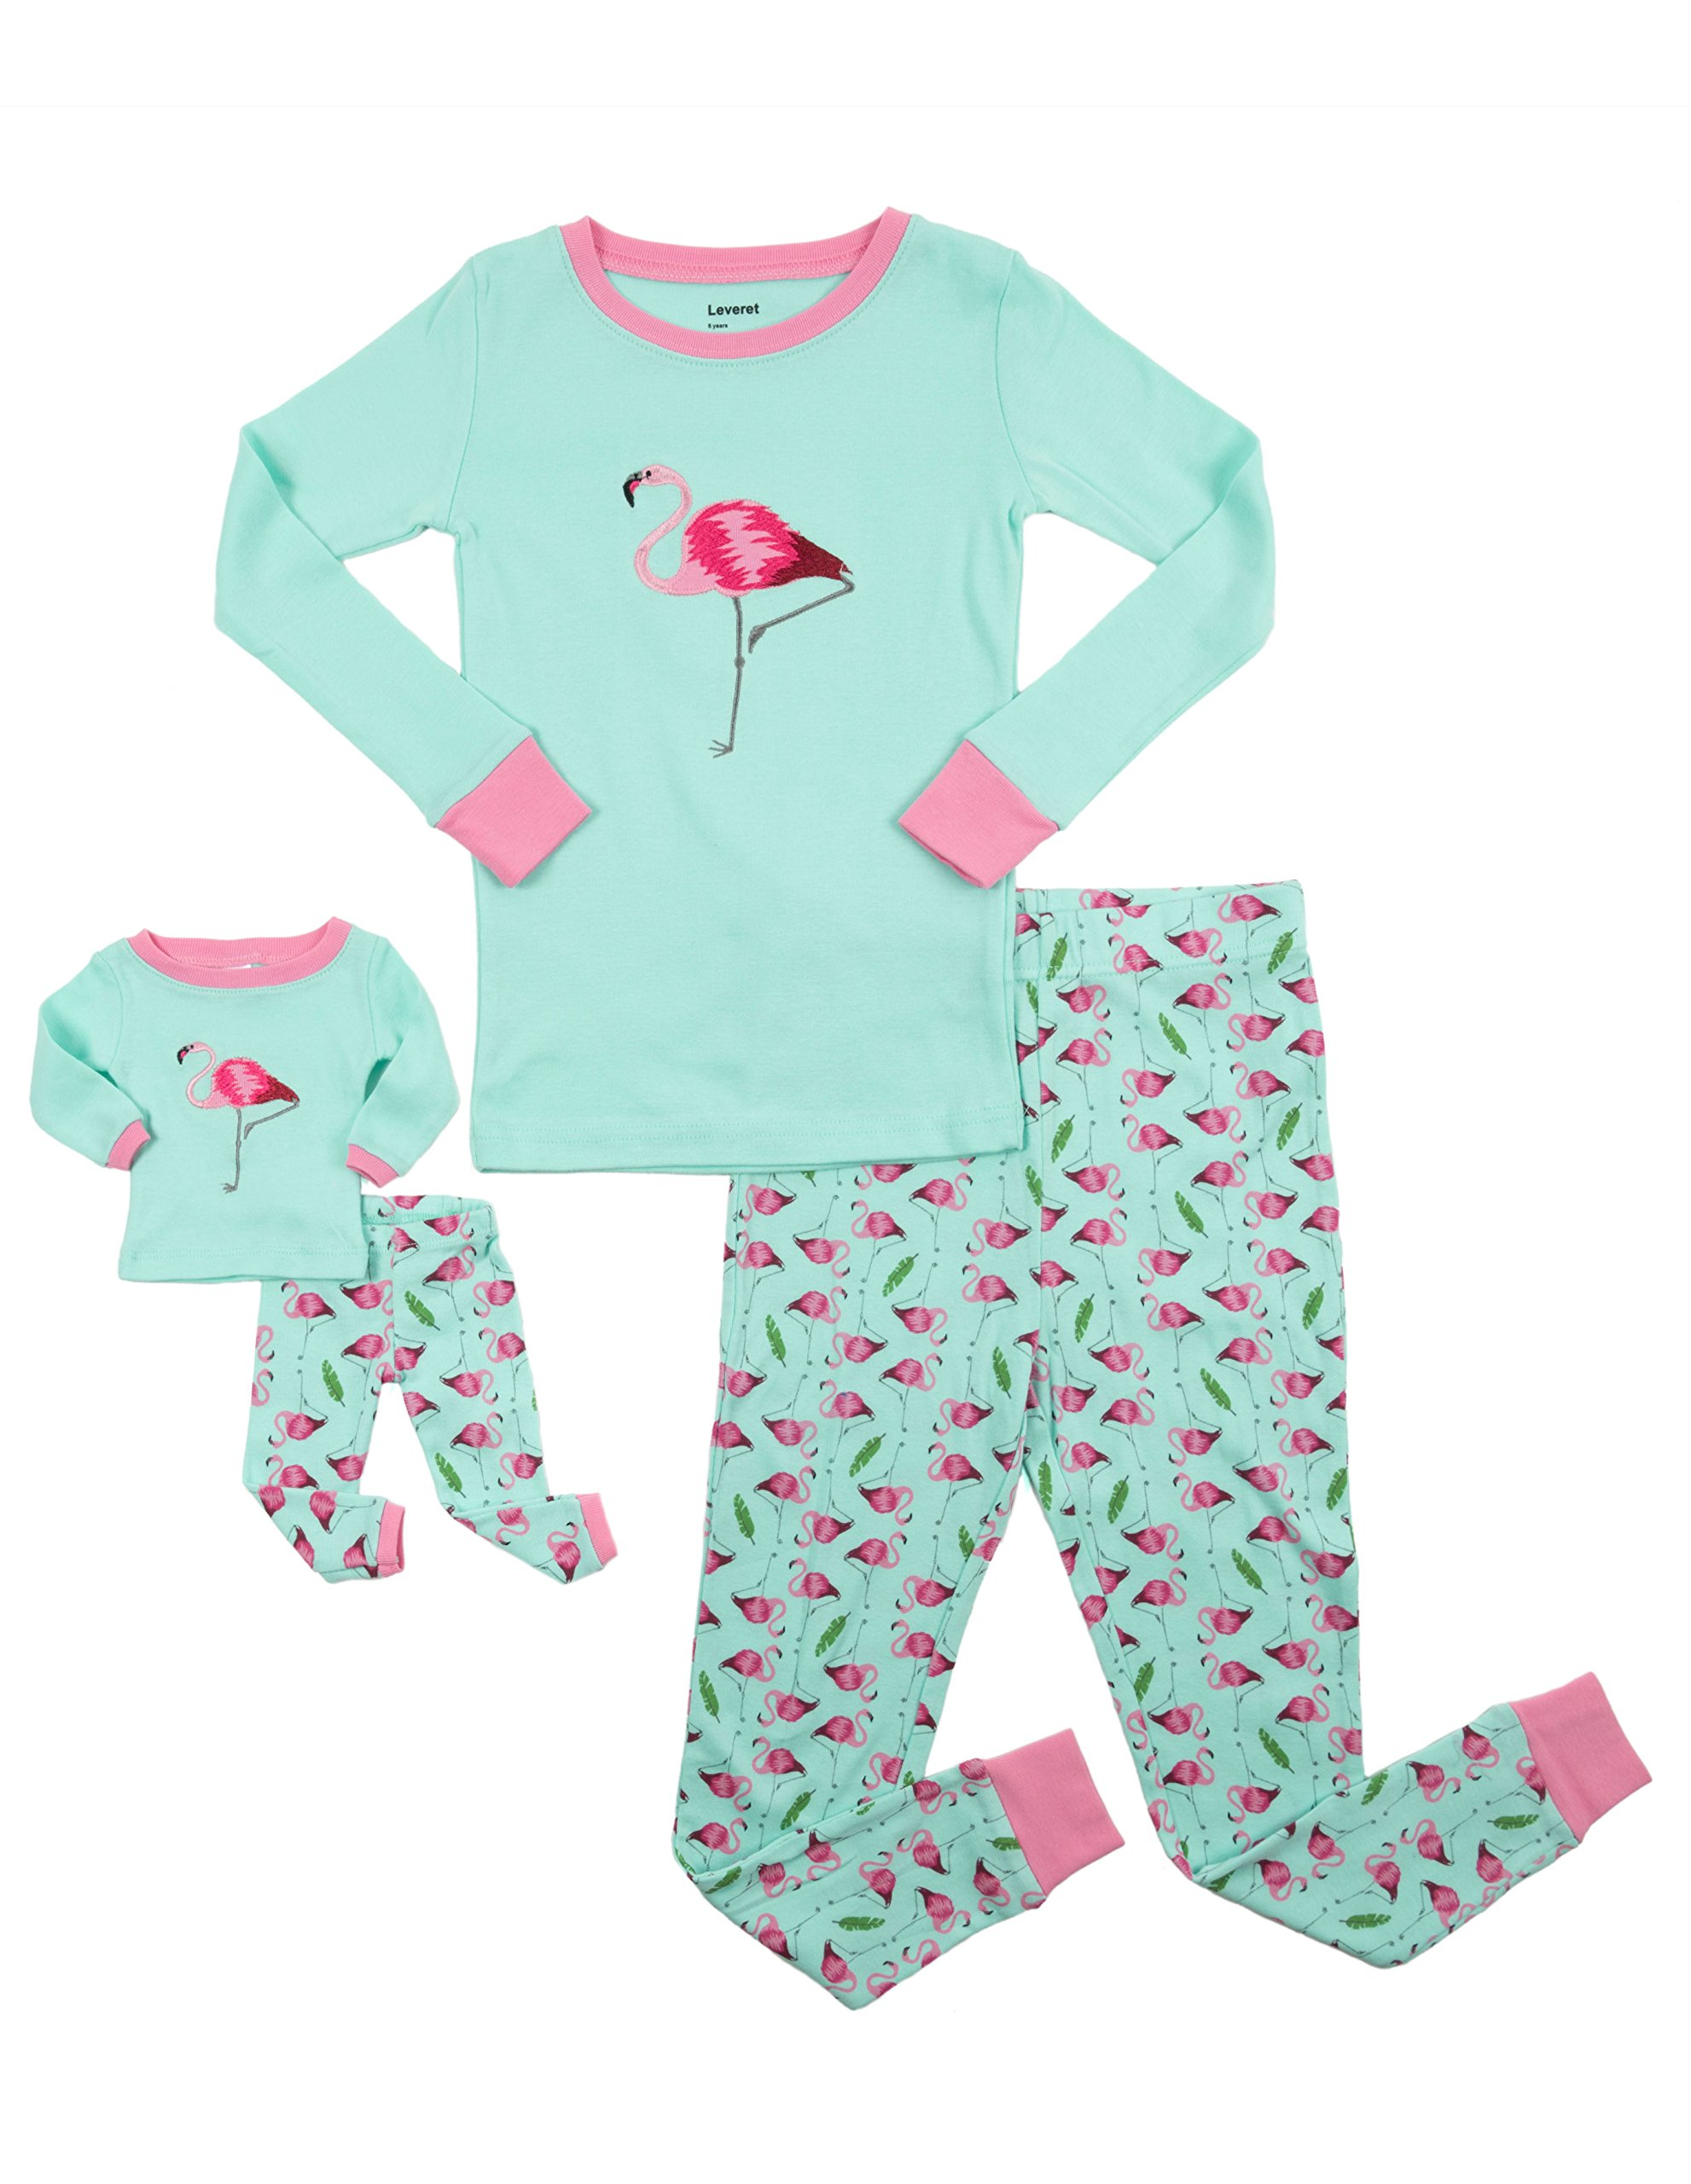 Leveret Matching Doll & Girl Flamingo 2 Piece Pajama Set 100% Cotton Size 10 Years by Leveret (Image #1)